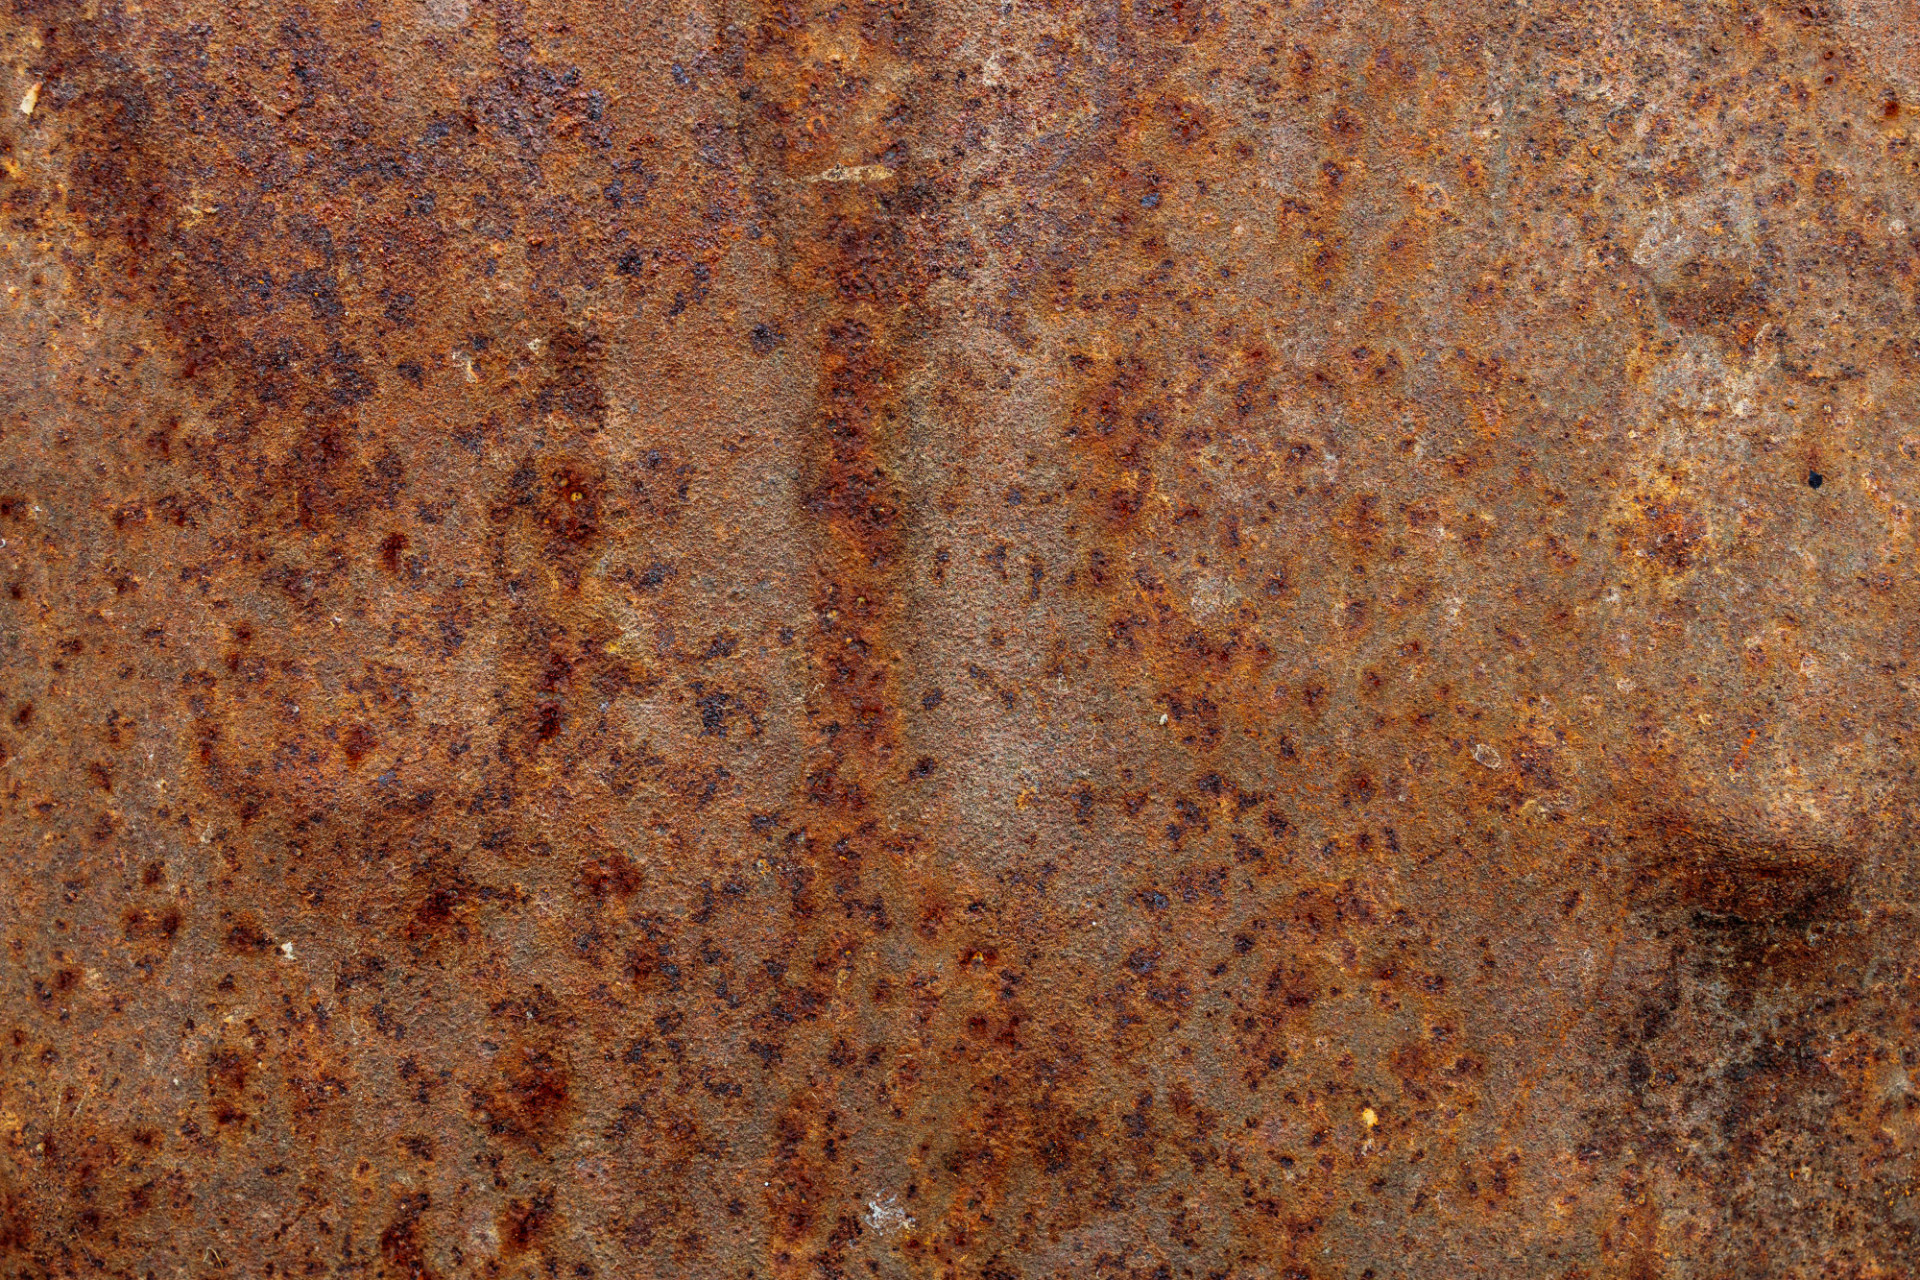 Old red grunge rusty metal texture background